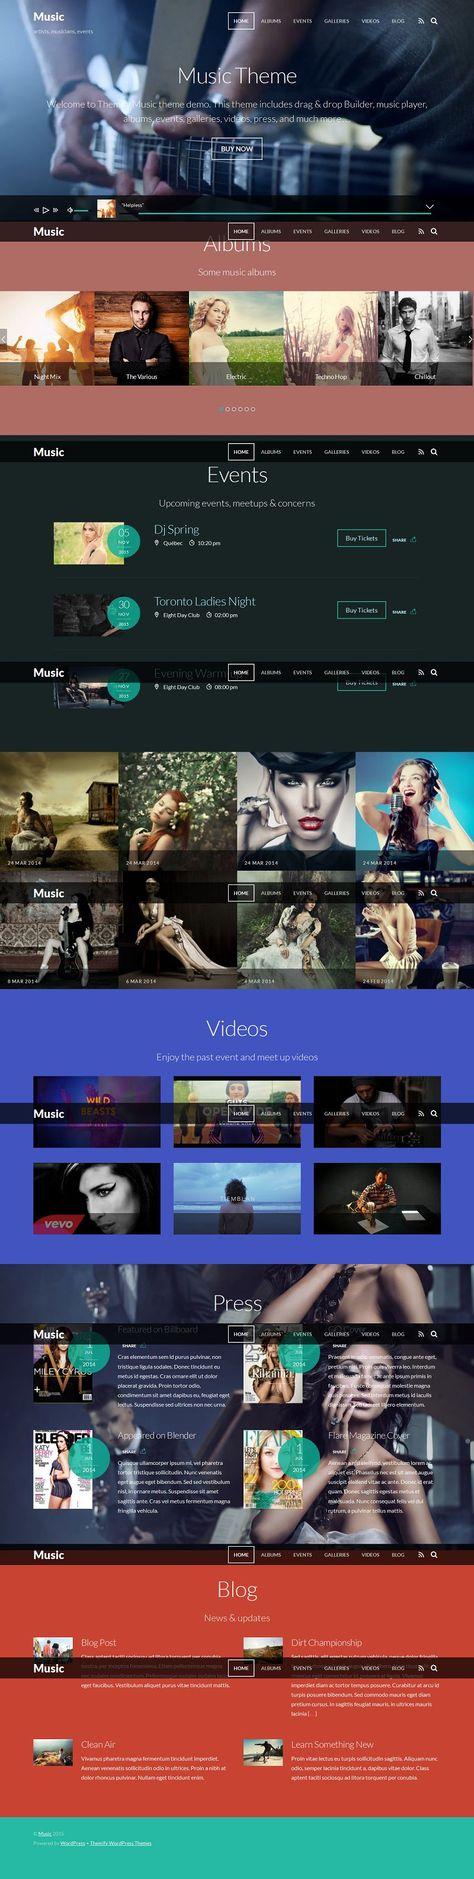 Music Responsive WordPress Theme for Artists, Events